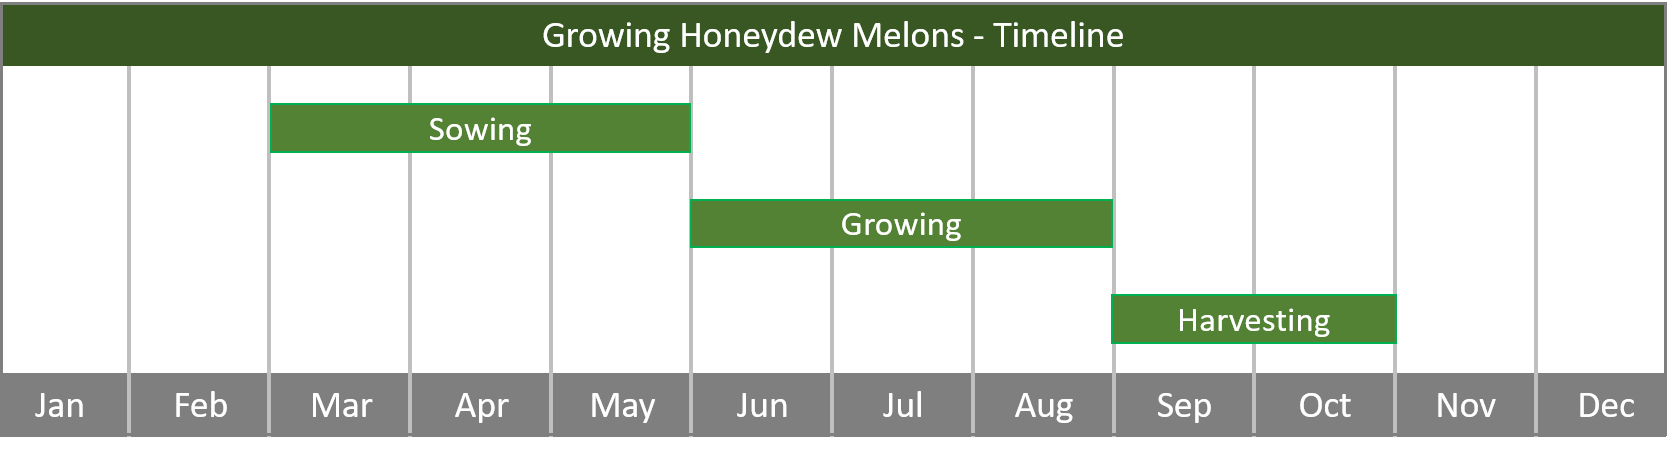 how to grow honeydew melons from seed to harvest at home timeline